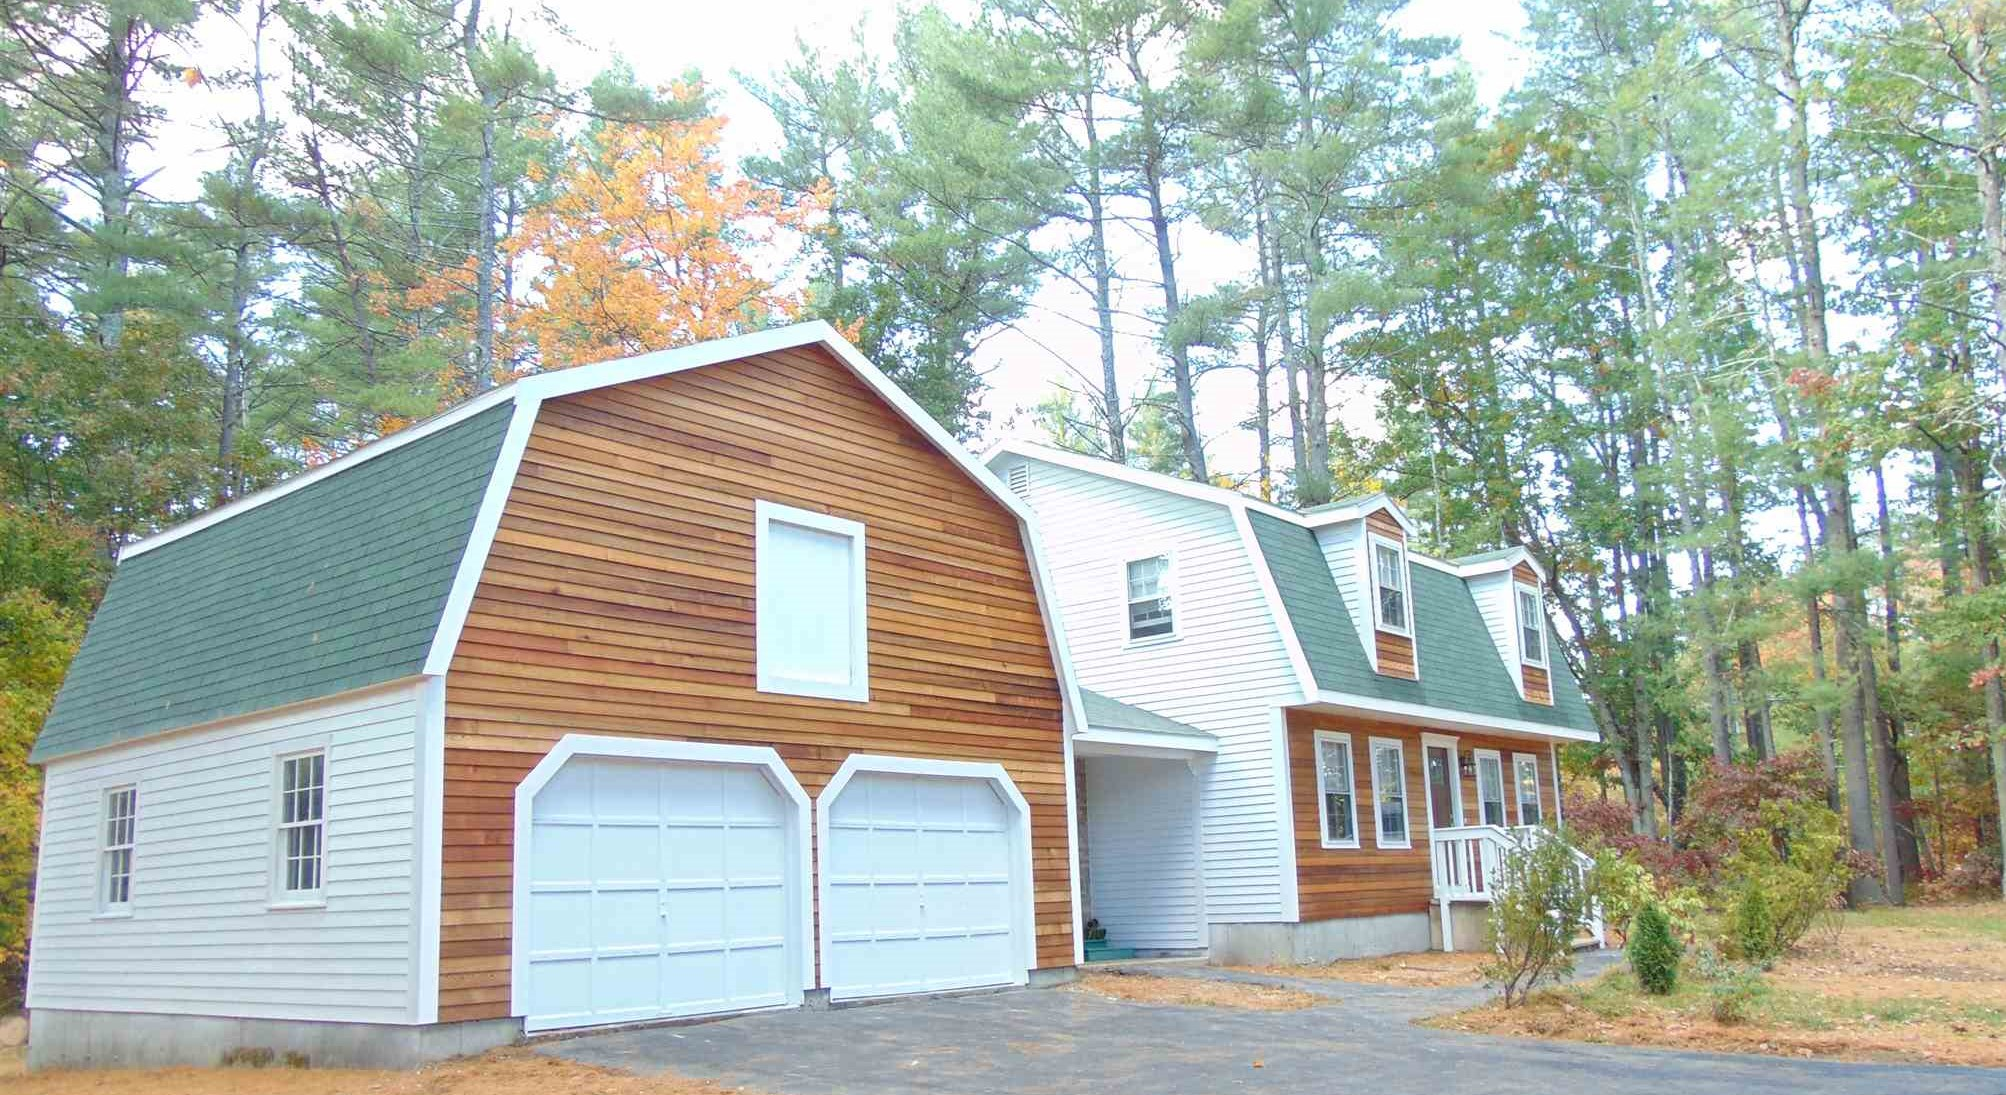 MLS 4834210: 96 TALENT Road, Litchfield NH